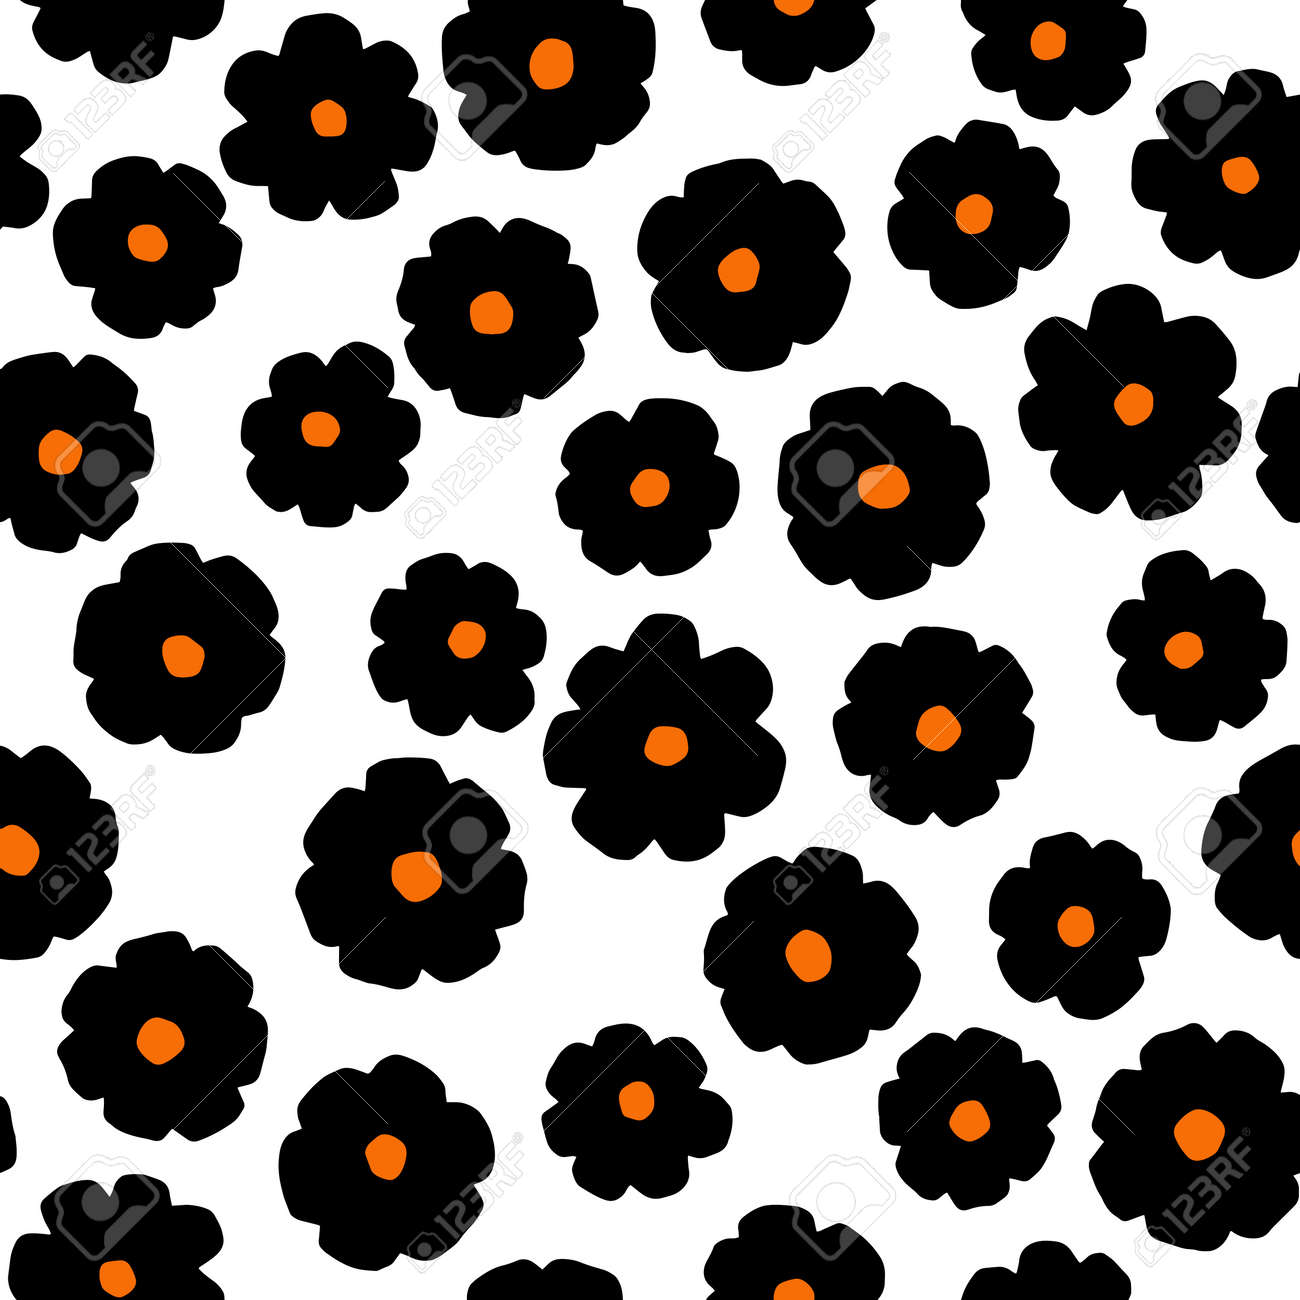 Black flowers on white background. Vector minimalistic seamless pattern - 172106740